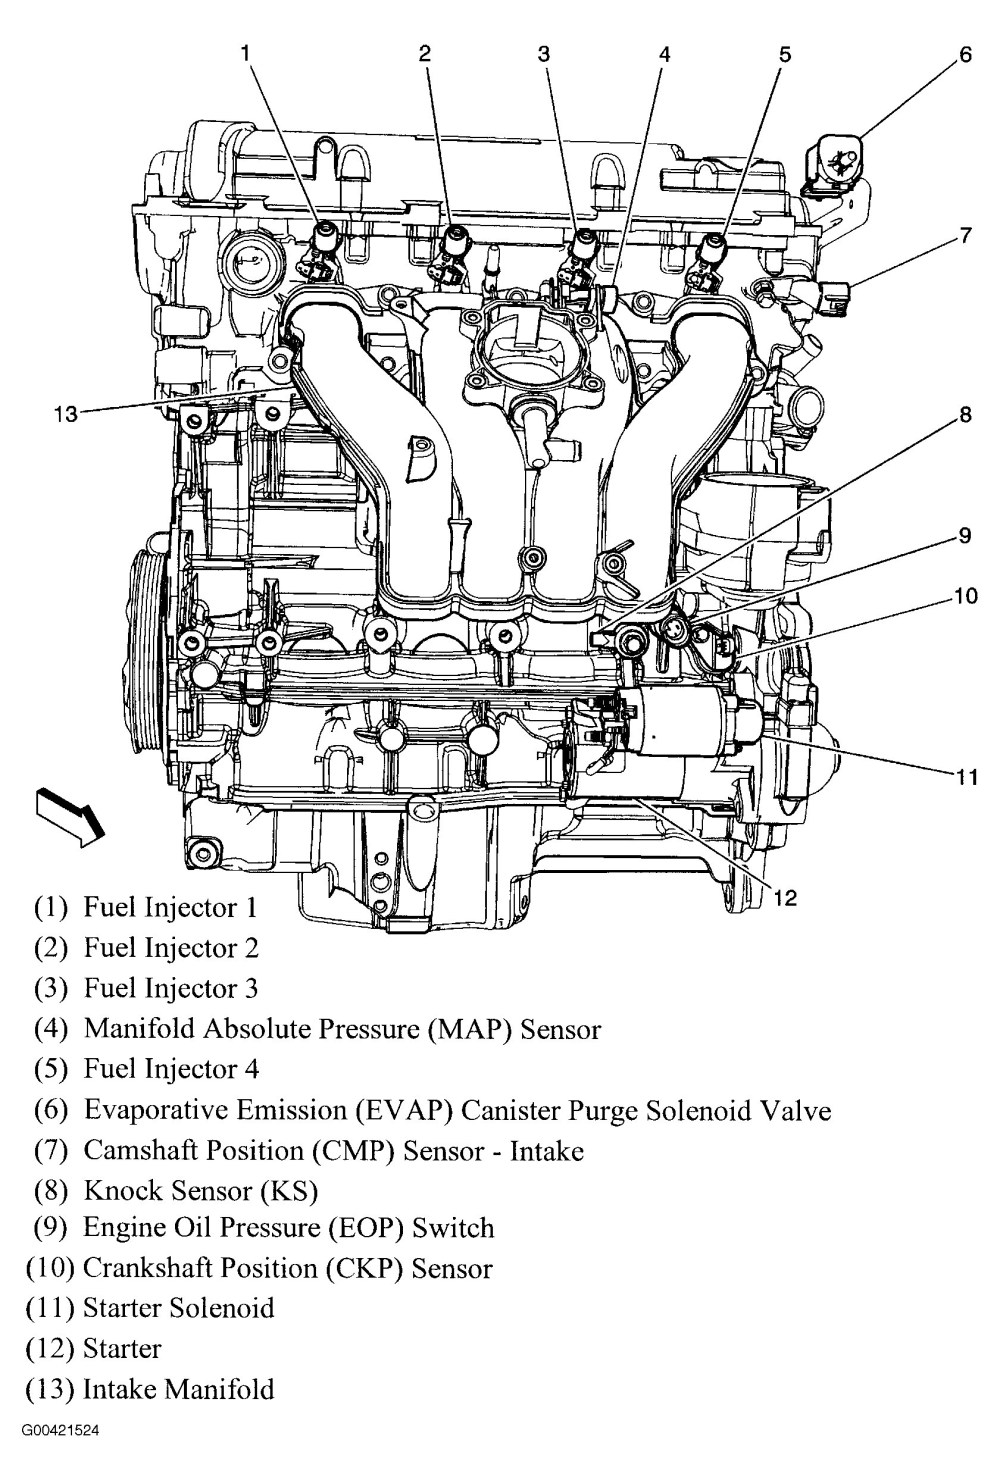 medium resolution of 2011 camaro engine diagram wiring diagram paper 2010 camaro v6 engine diagram 2010 camaro engine diagram